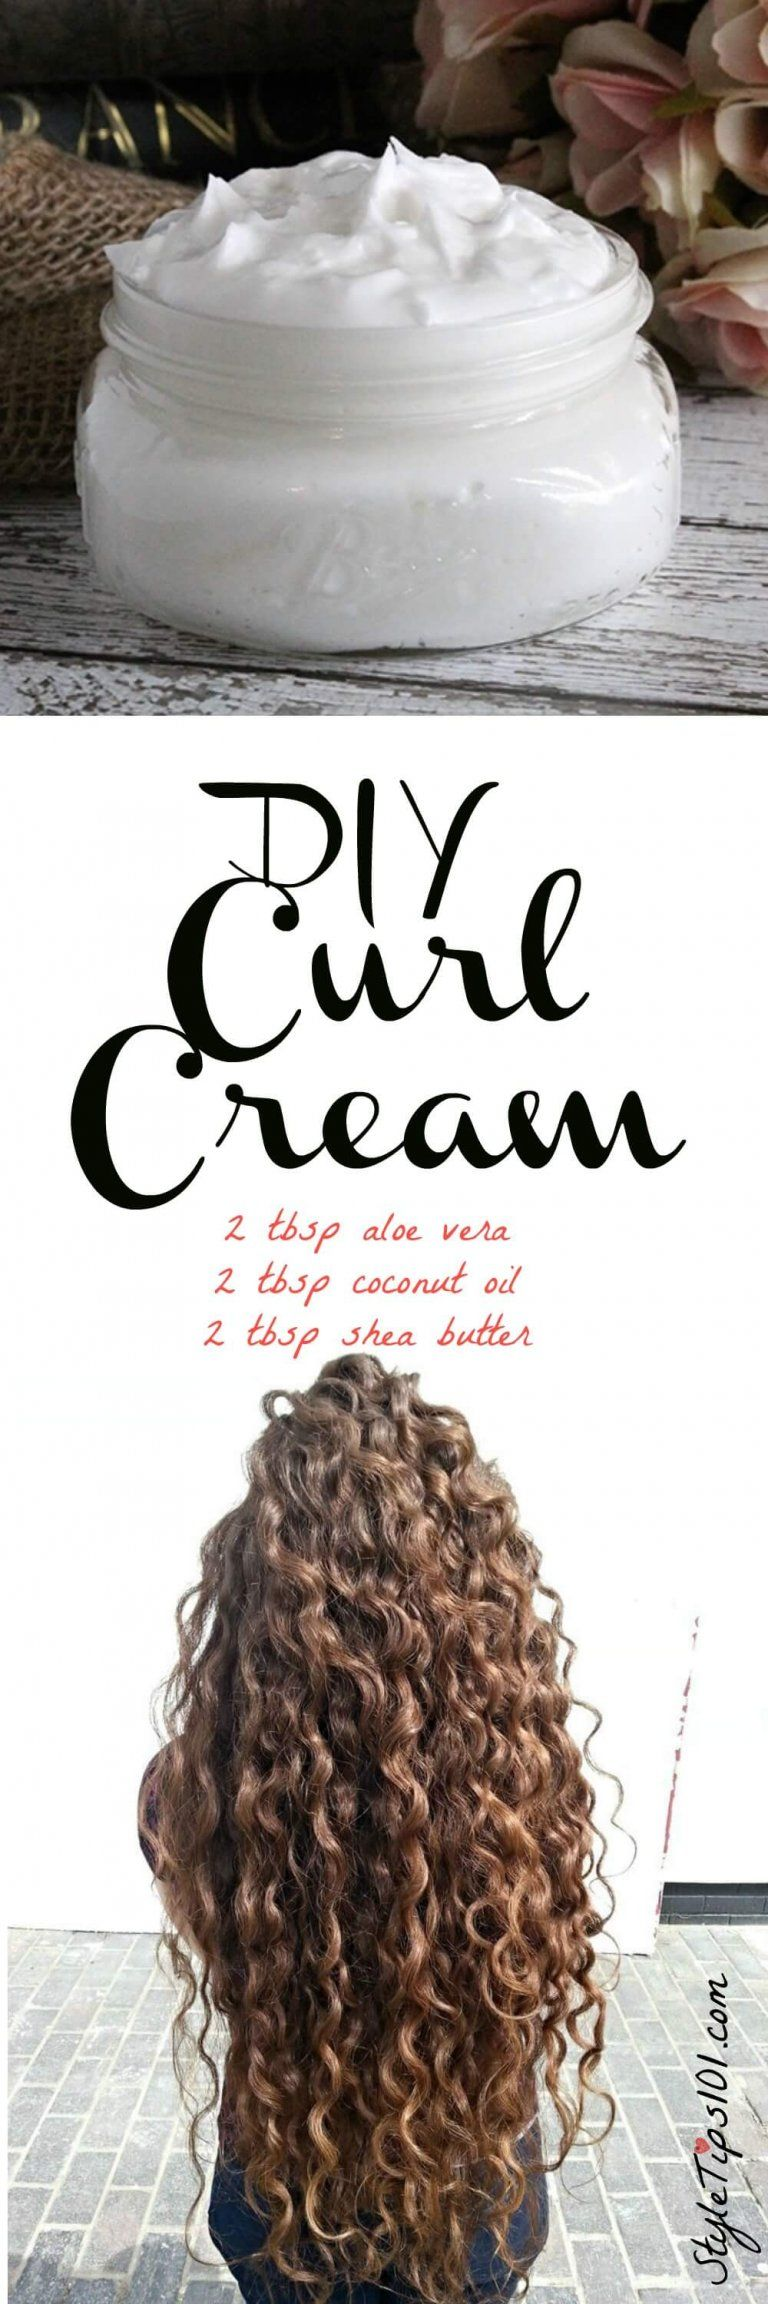 Diy curl cream body u soul pinterest curls cream and diy